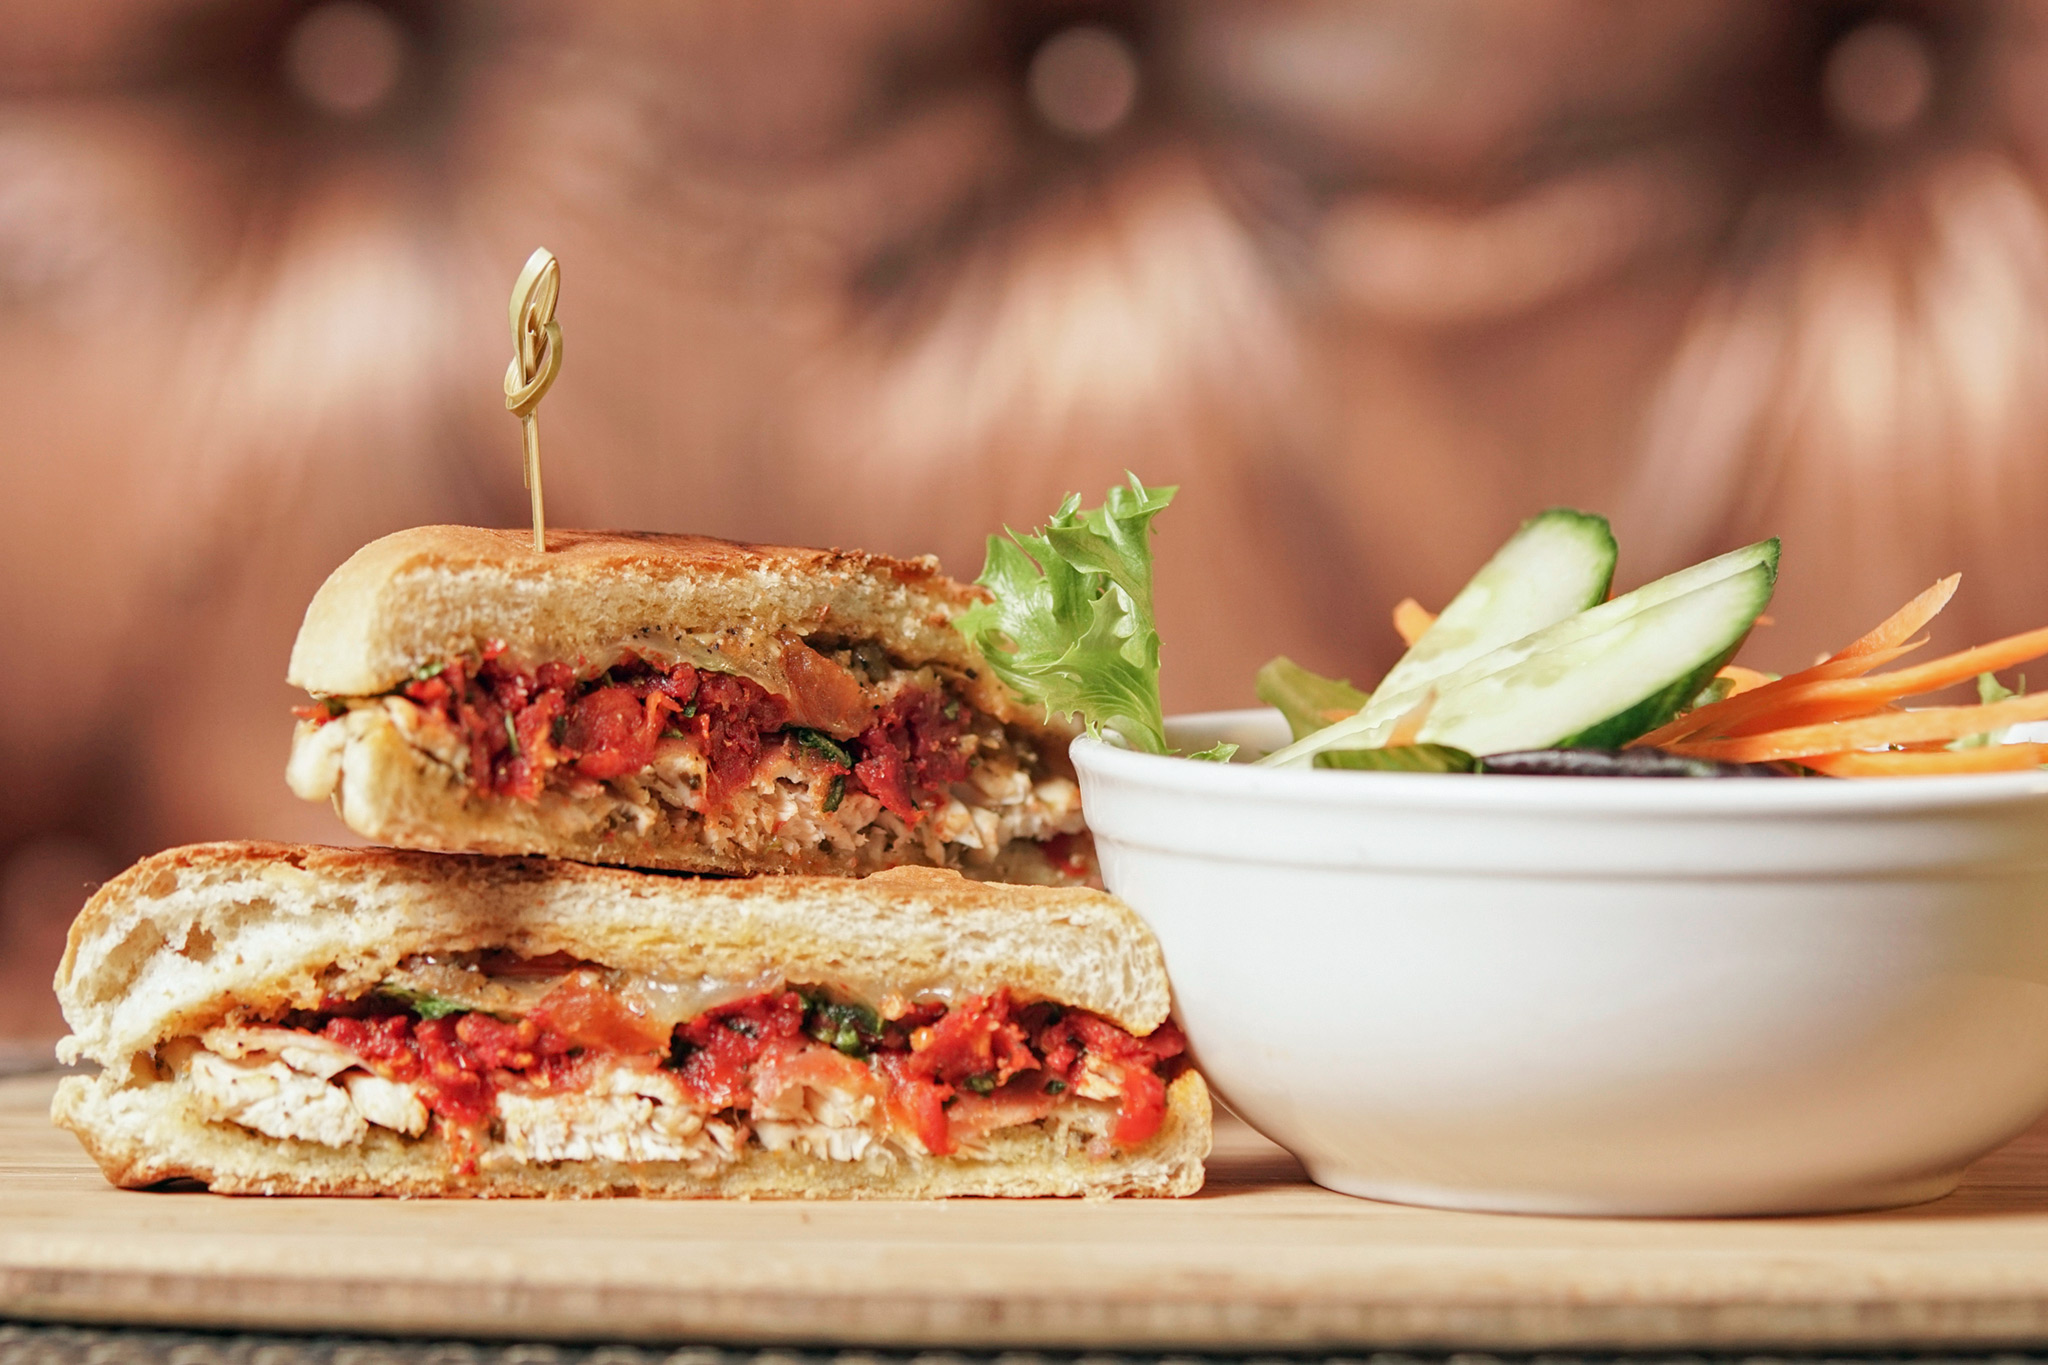 Chicken Panini - herb marinated grilled chicken breast, basil pesto, arugula and sun dried tomato relish, Tryst pepper sauce, toma cheese, prosciutto, ciabatta bun